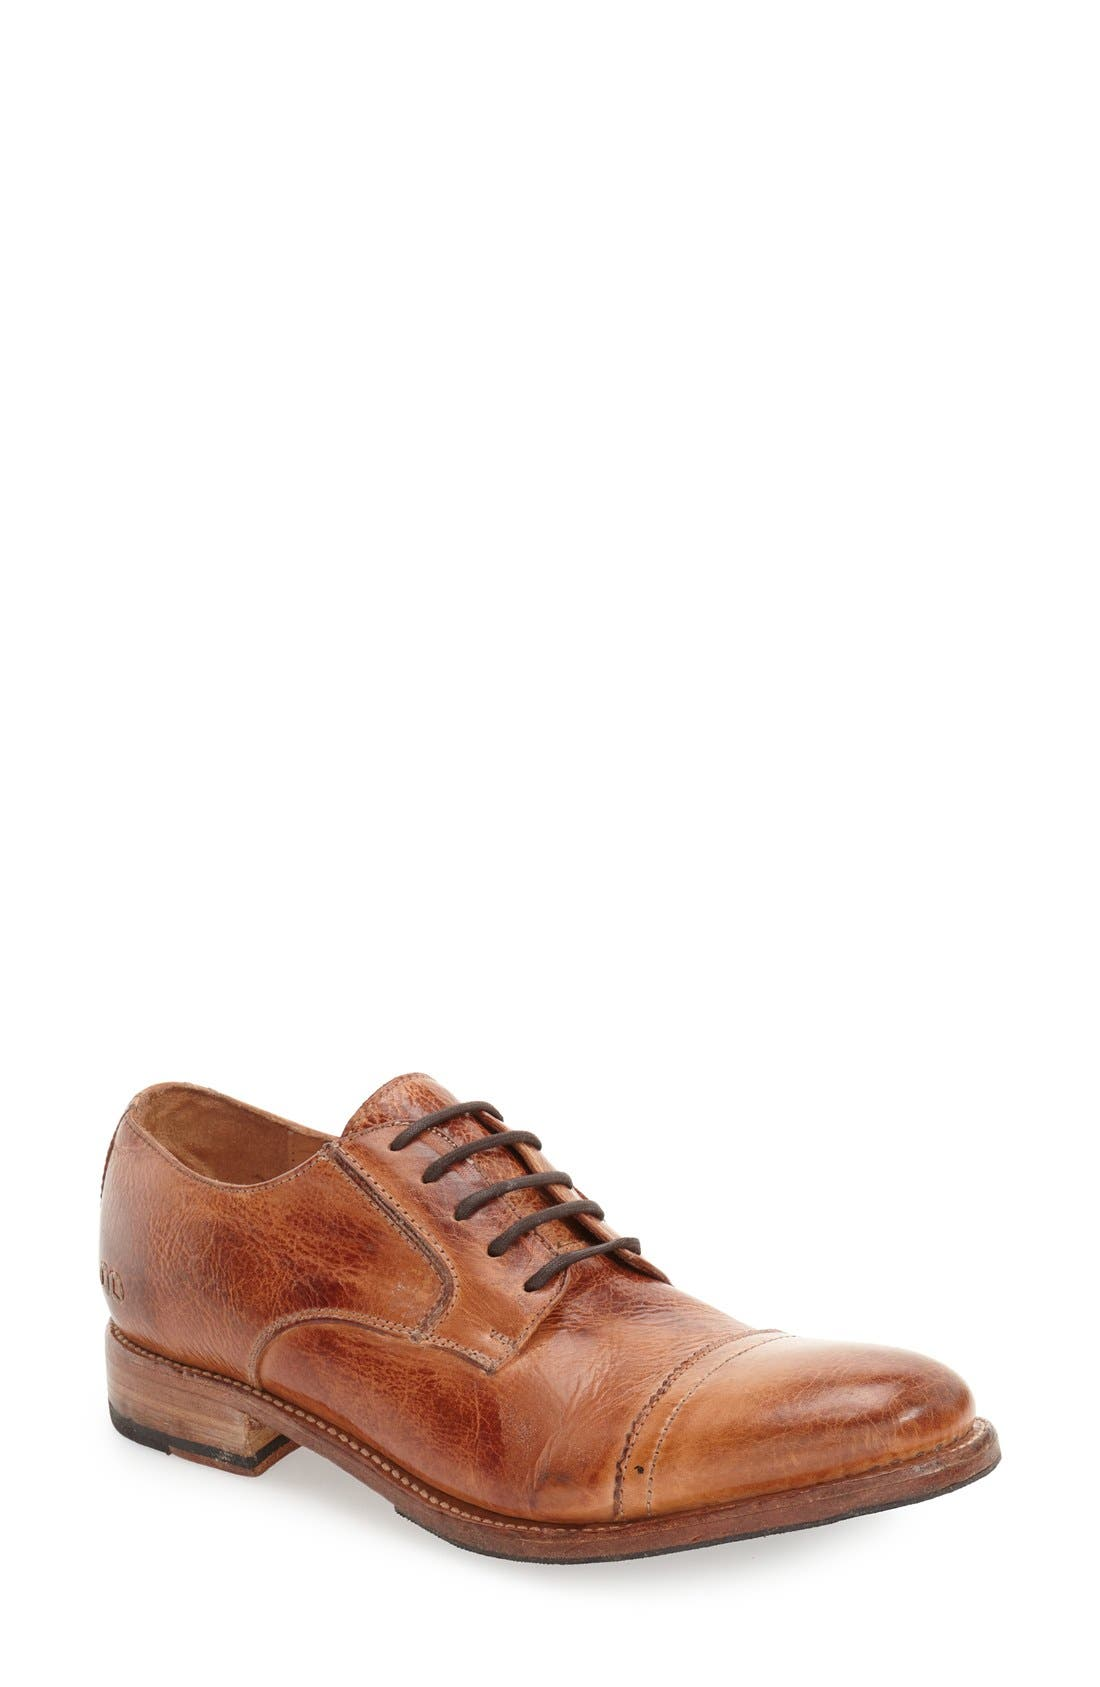 Bed Stu 'Diorite' Cap Toe Derby (Men)